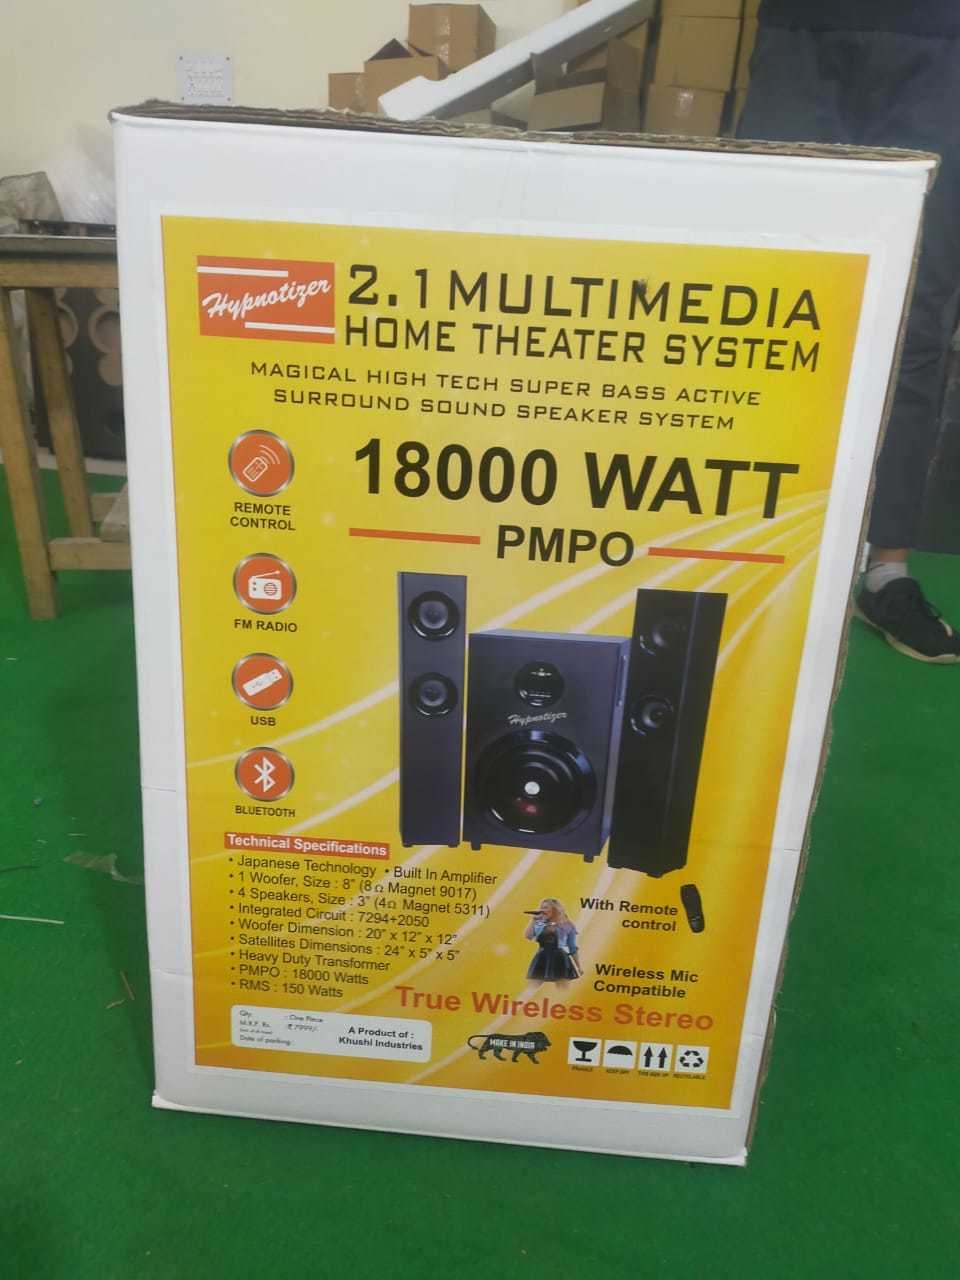 2.1 multimedia home theater system